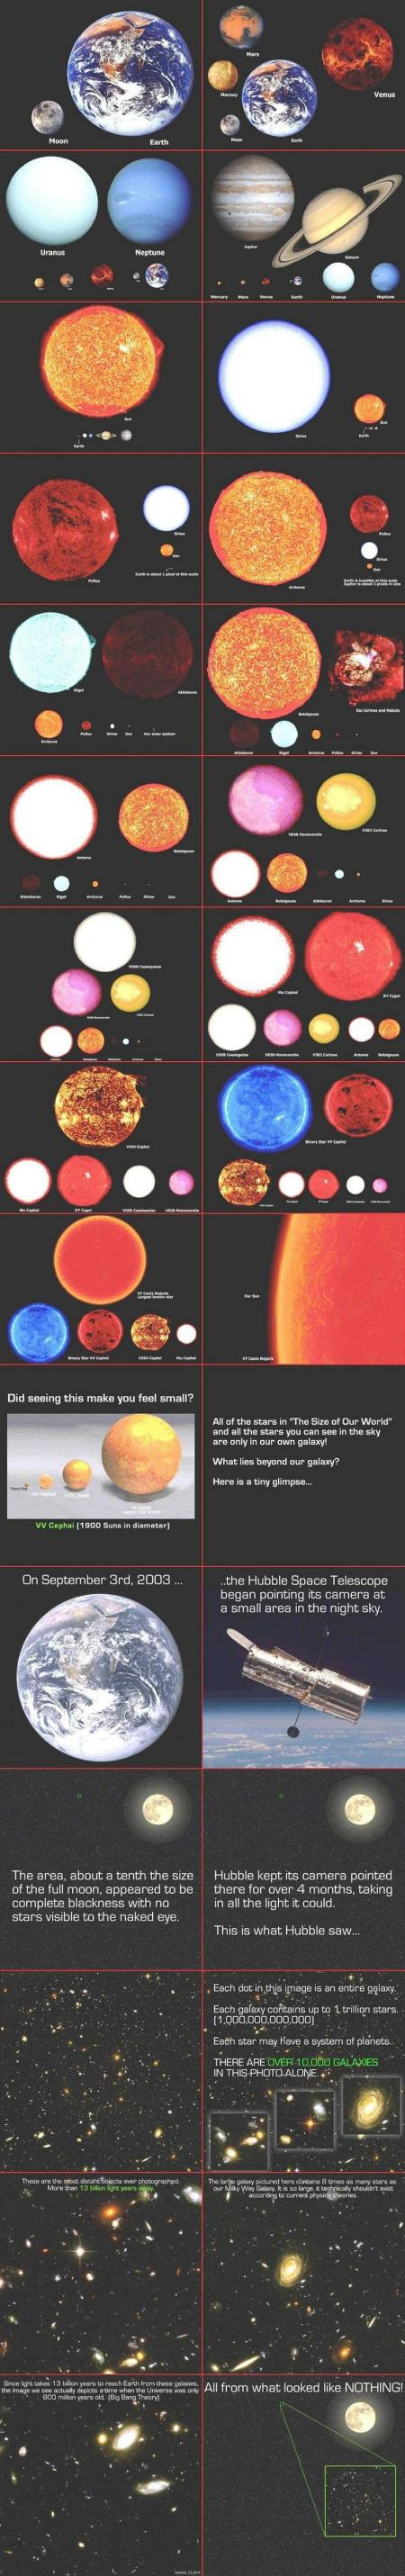 size-of-the-earth-compared-to-the-rest-of-the-universe-space-planets-stars